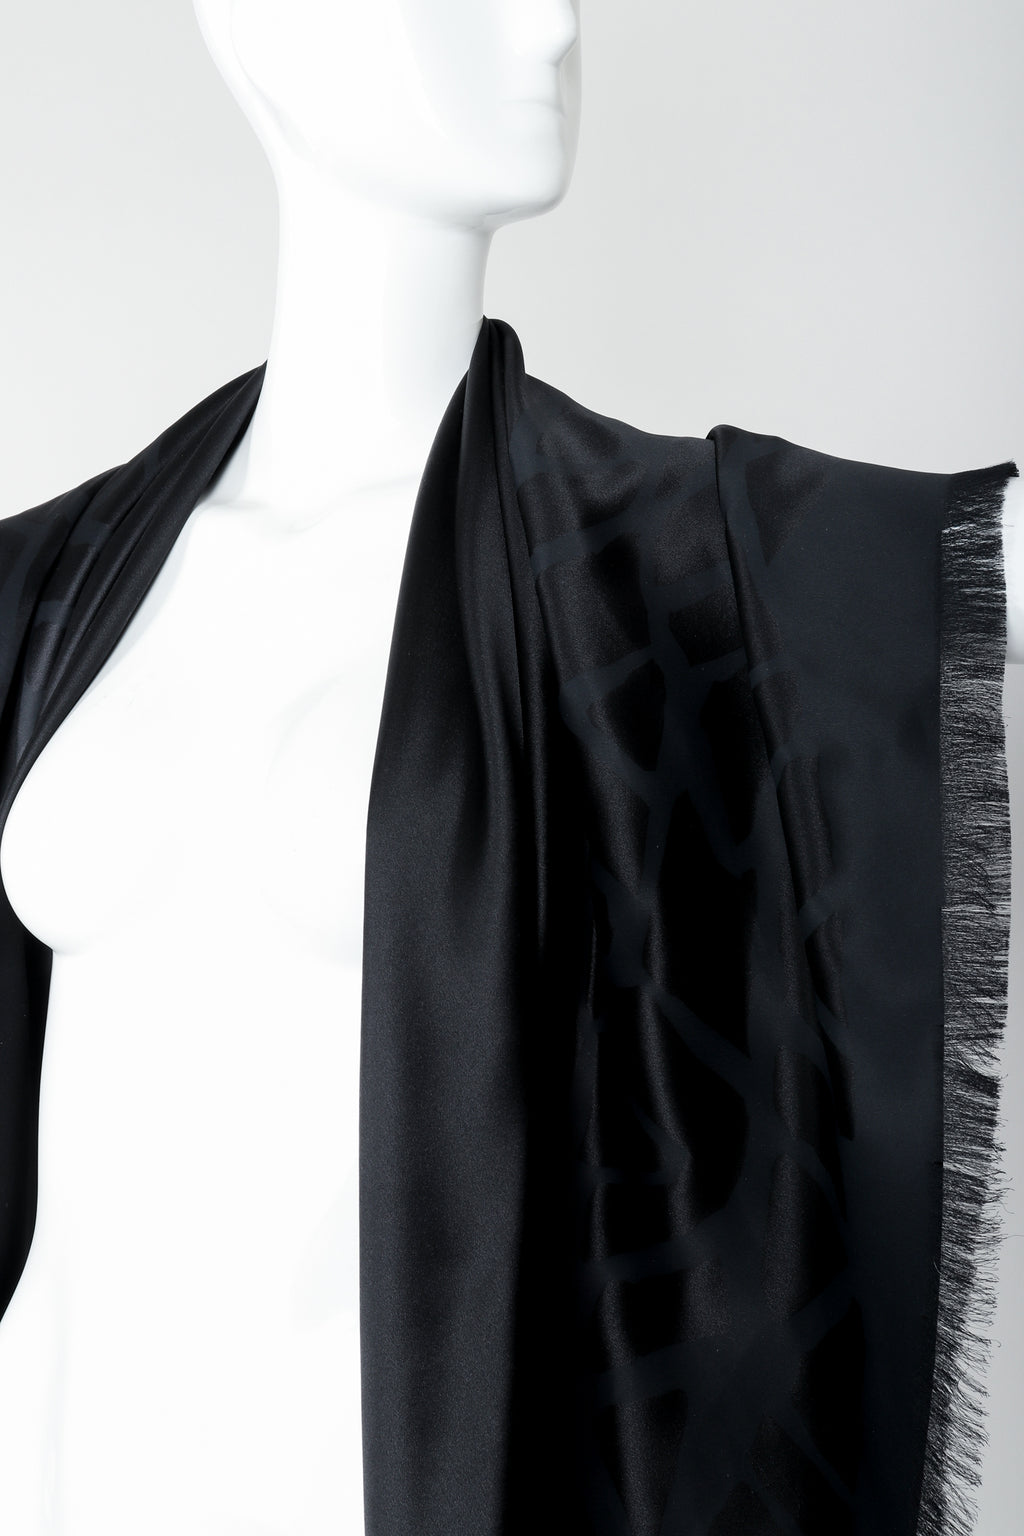 Vintage Yves Saint Laurent YSL Rive Gauche Oversized Noir Silk Scarf on Mannequin at Recess